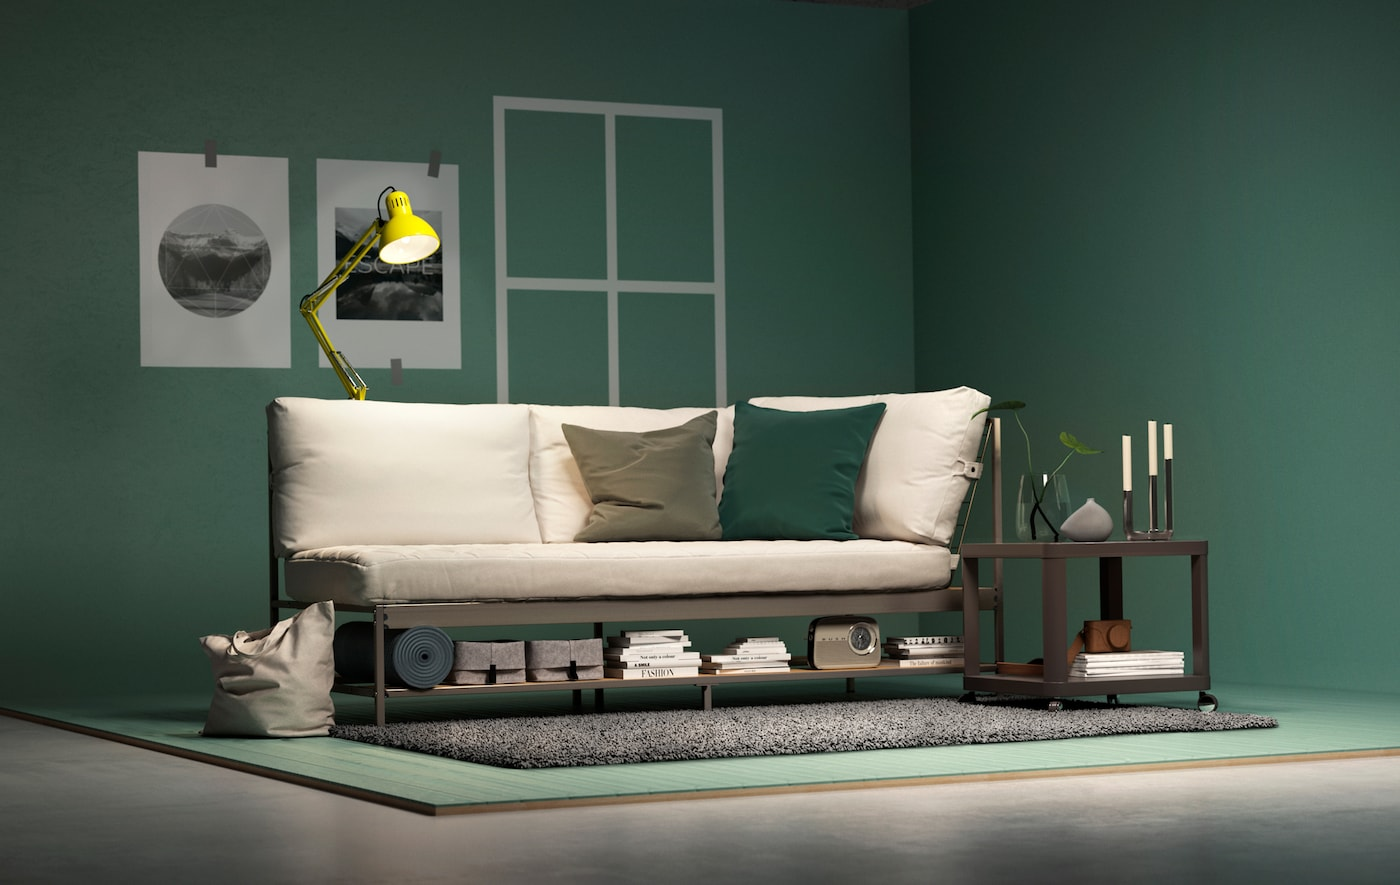 An IKEA EKEBOL sofa, TINGBY side table and TERTIAL lamp can fulfill living room needs like storage, seating, lighting, and entertainment. Minimalism is the new modern.